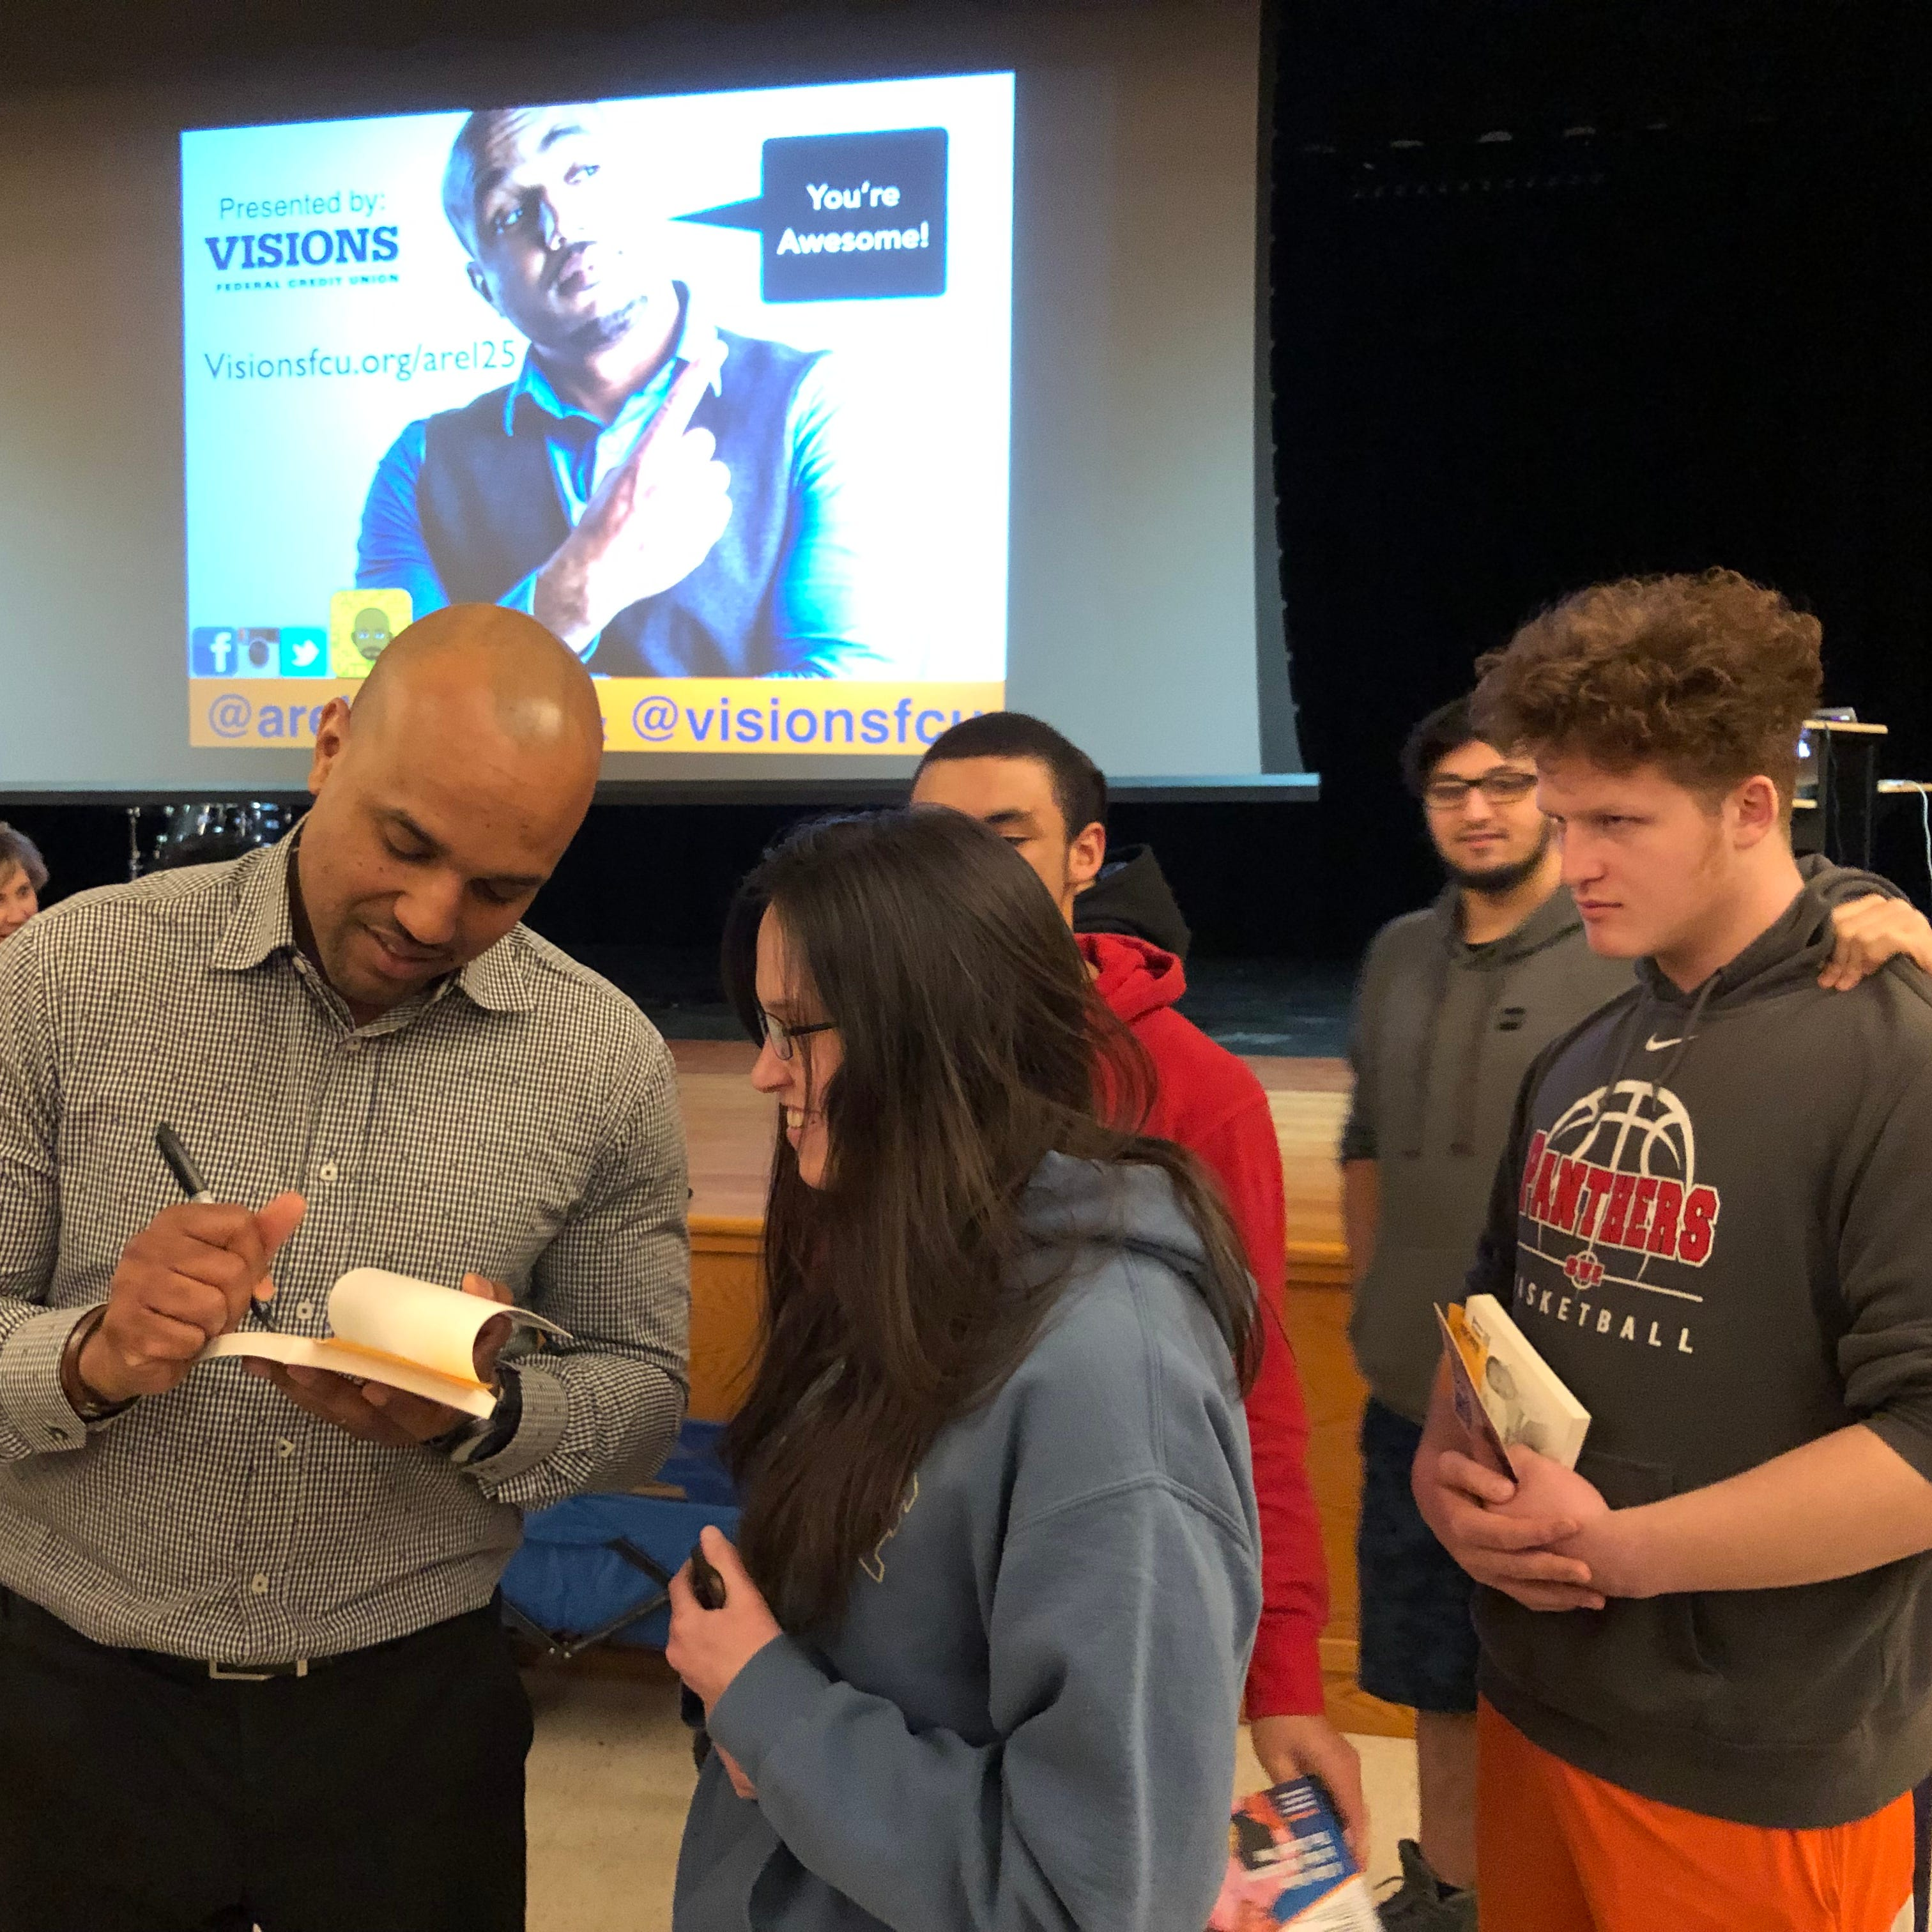 Spencer-Van Etten Town Talk: Speaker shares with students the secrets of success